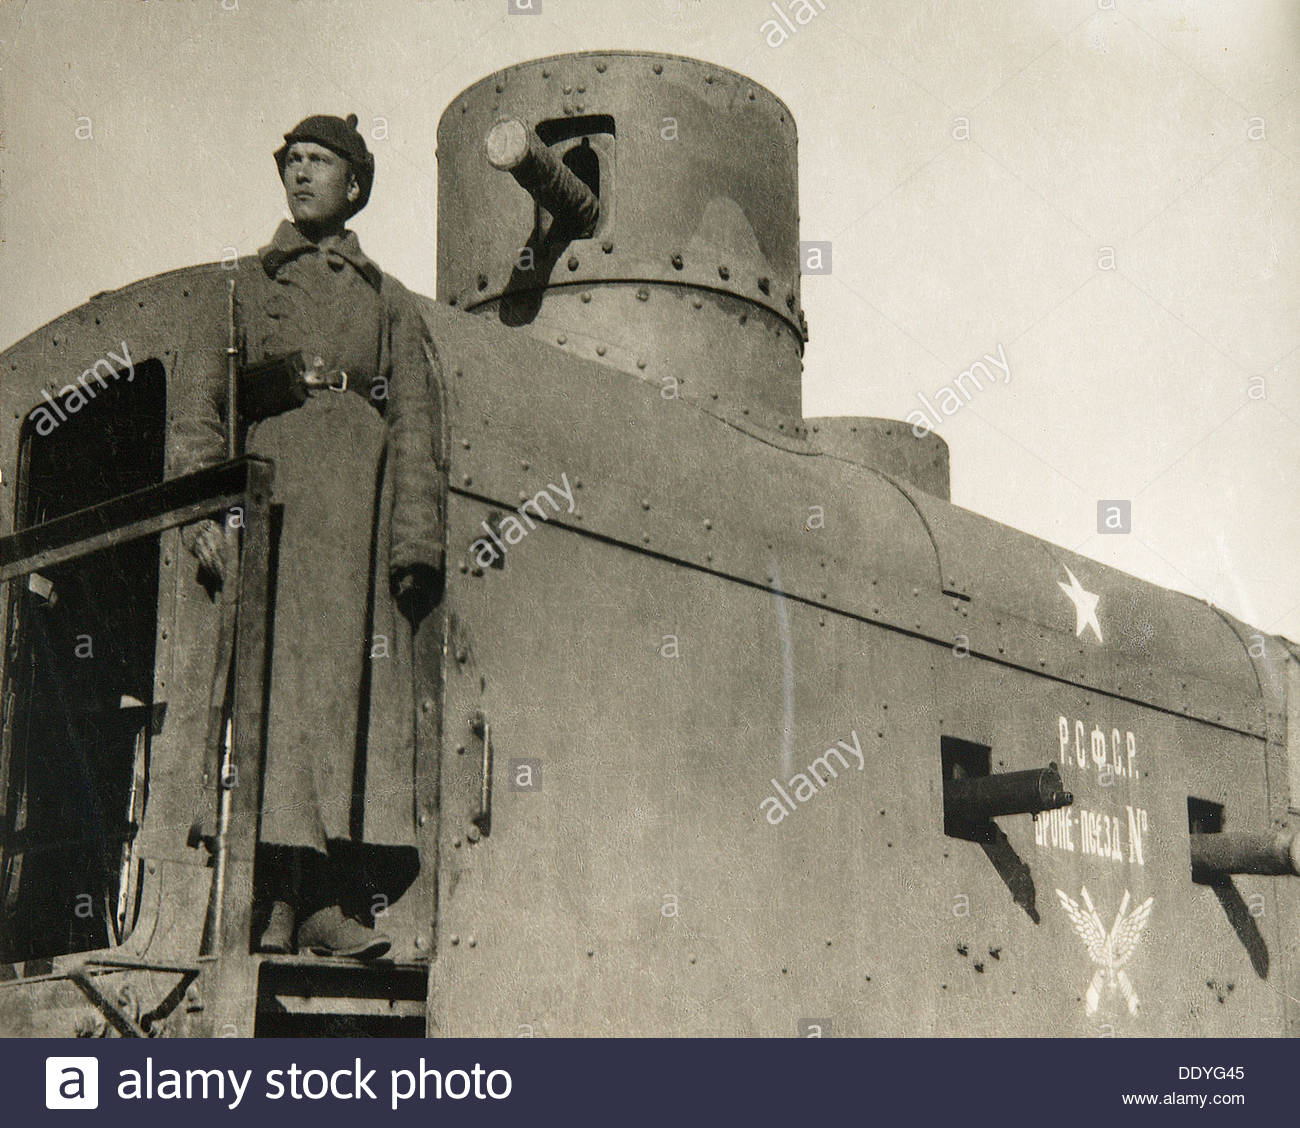 Armoured train near Tsaritsyn, Russia, Russian Civil War, 1918.  Artist: Pyotr Otsup - Stock Image